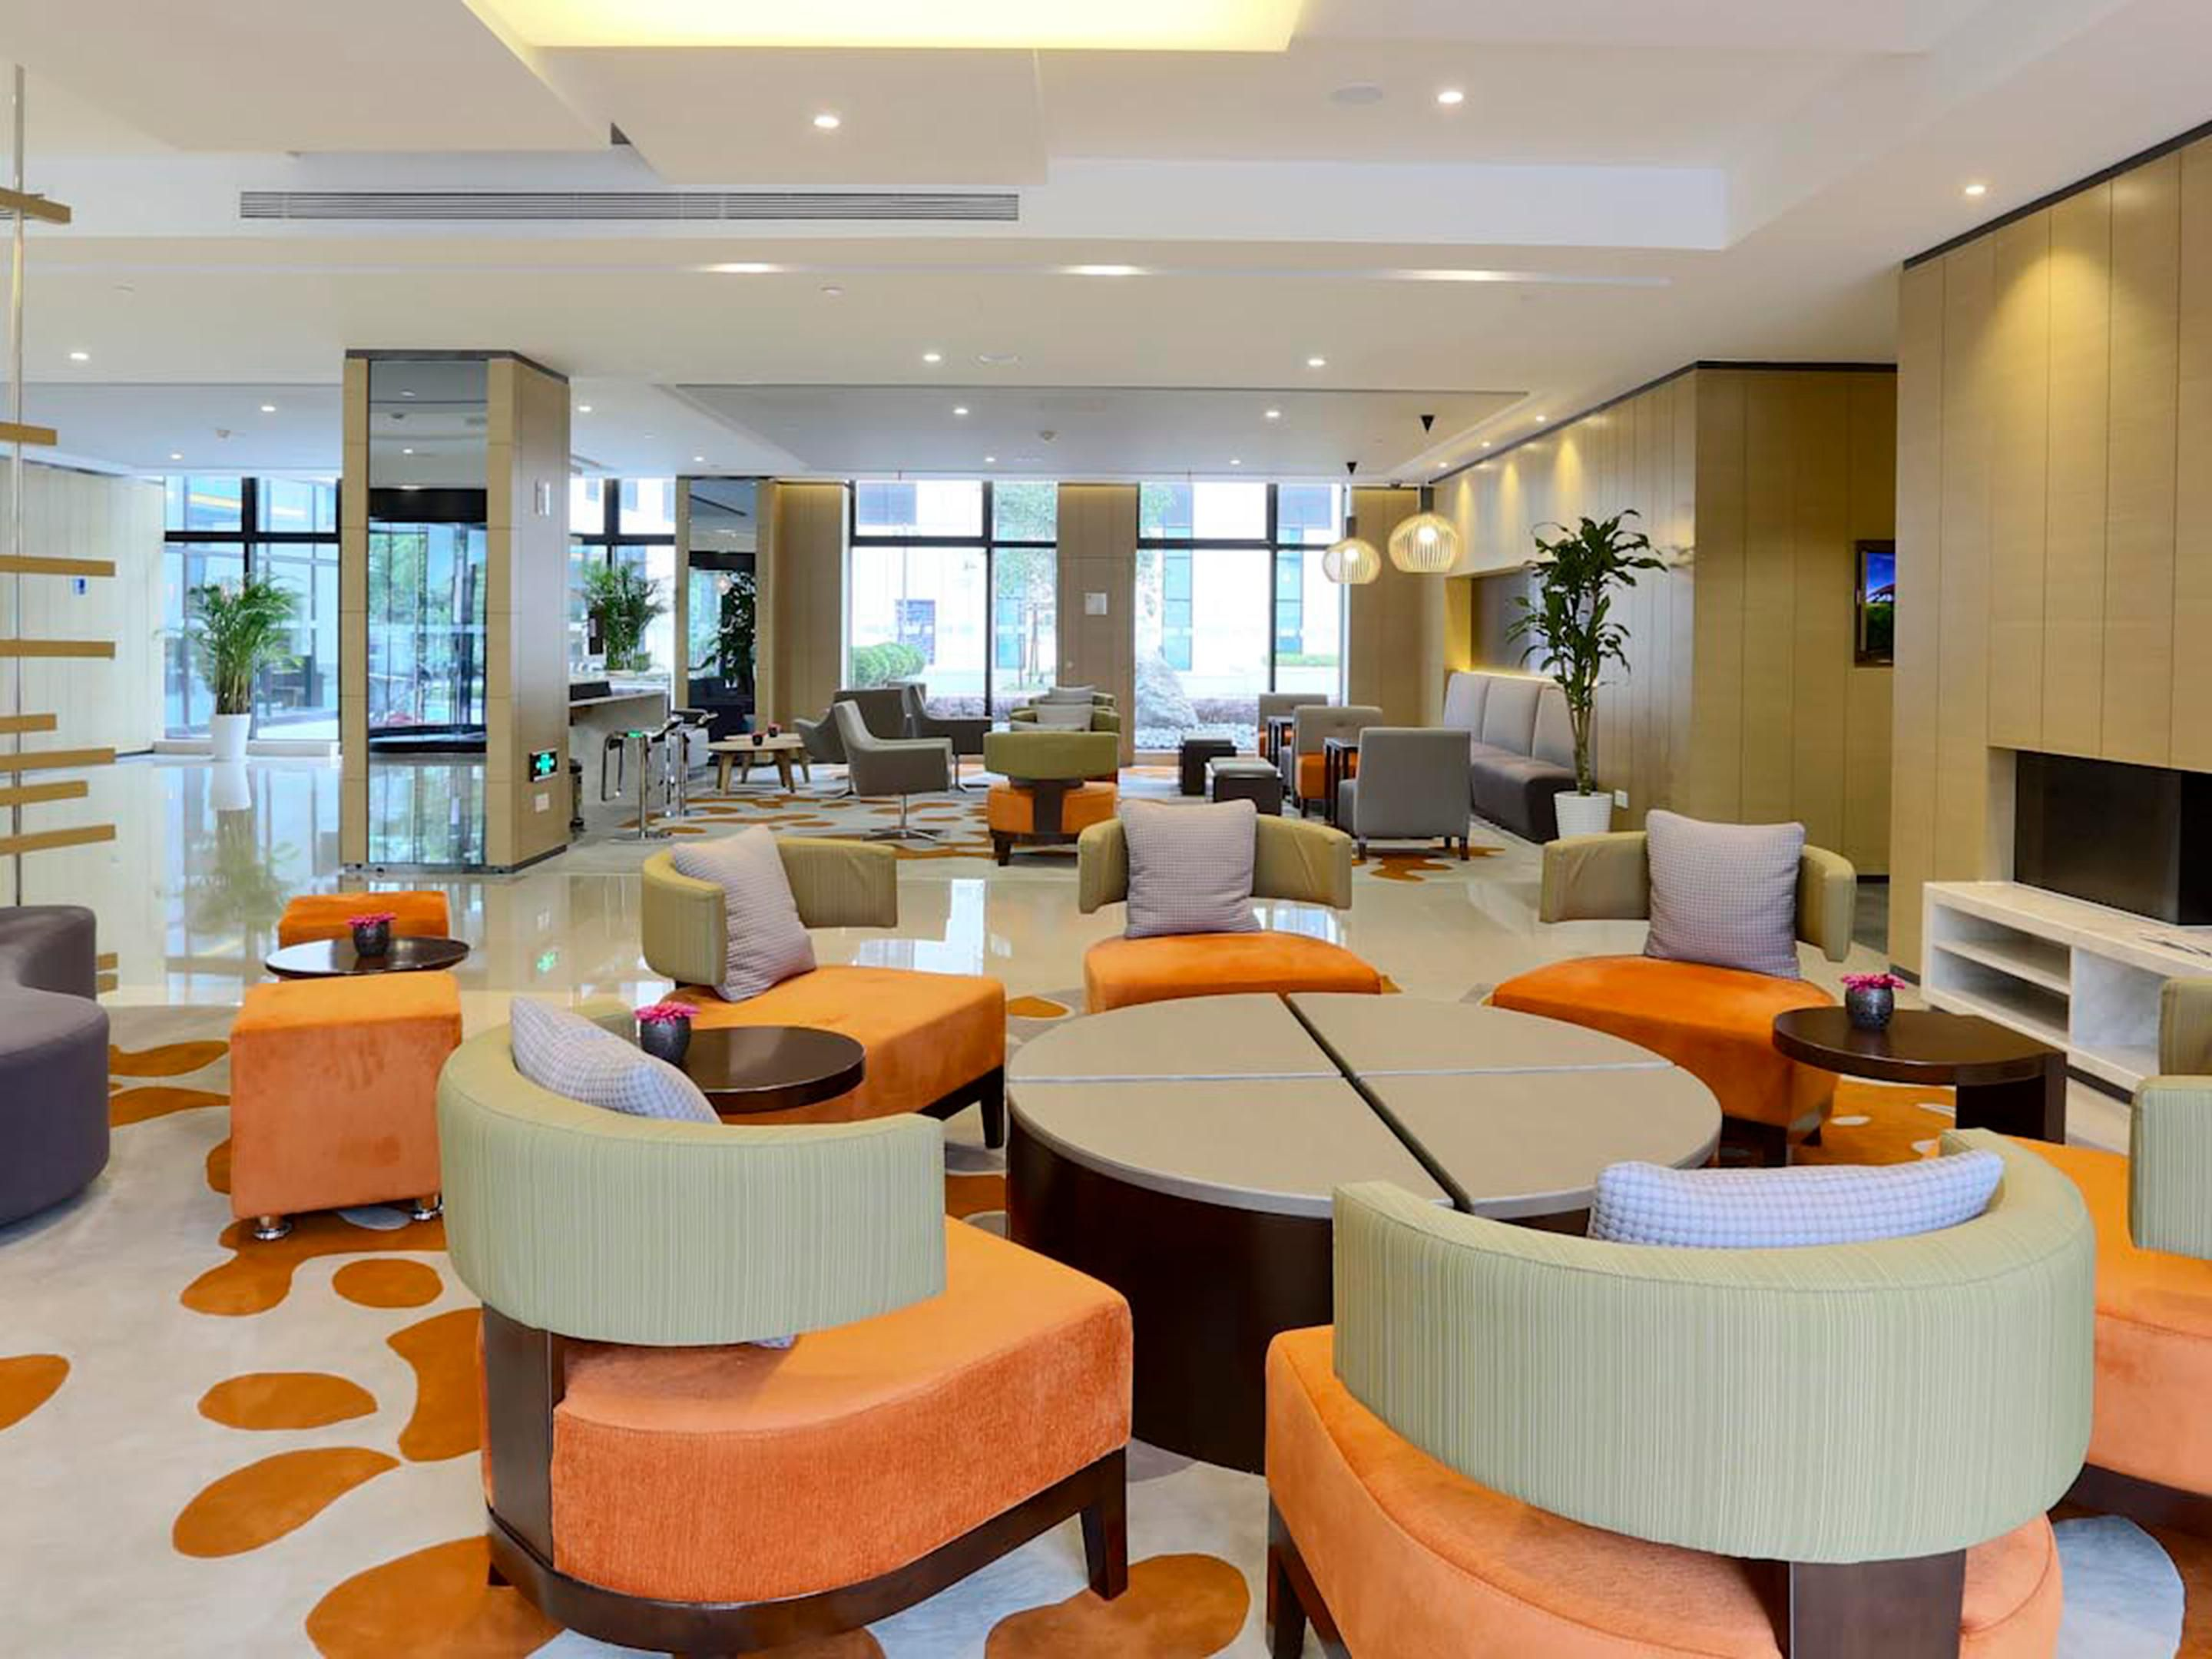 Holiday Inn Express Shanghai Gongkang Lobby Lounge